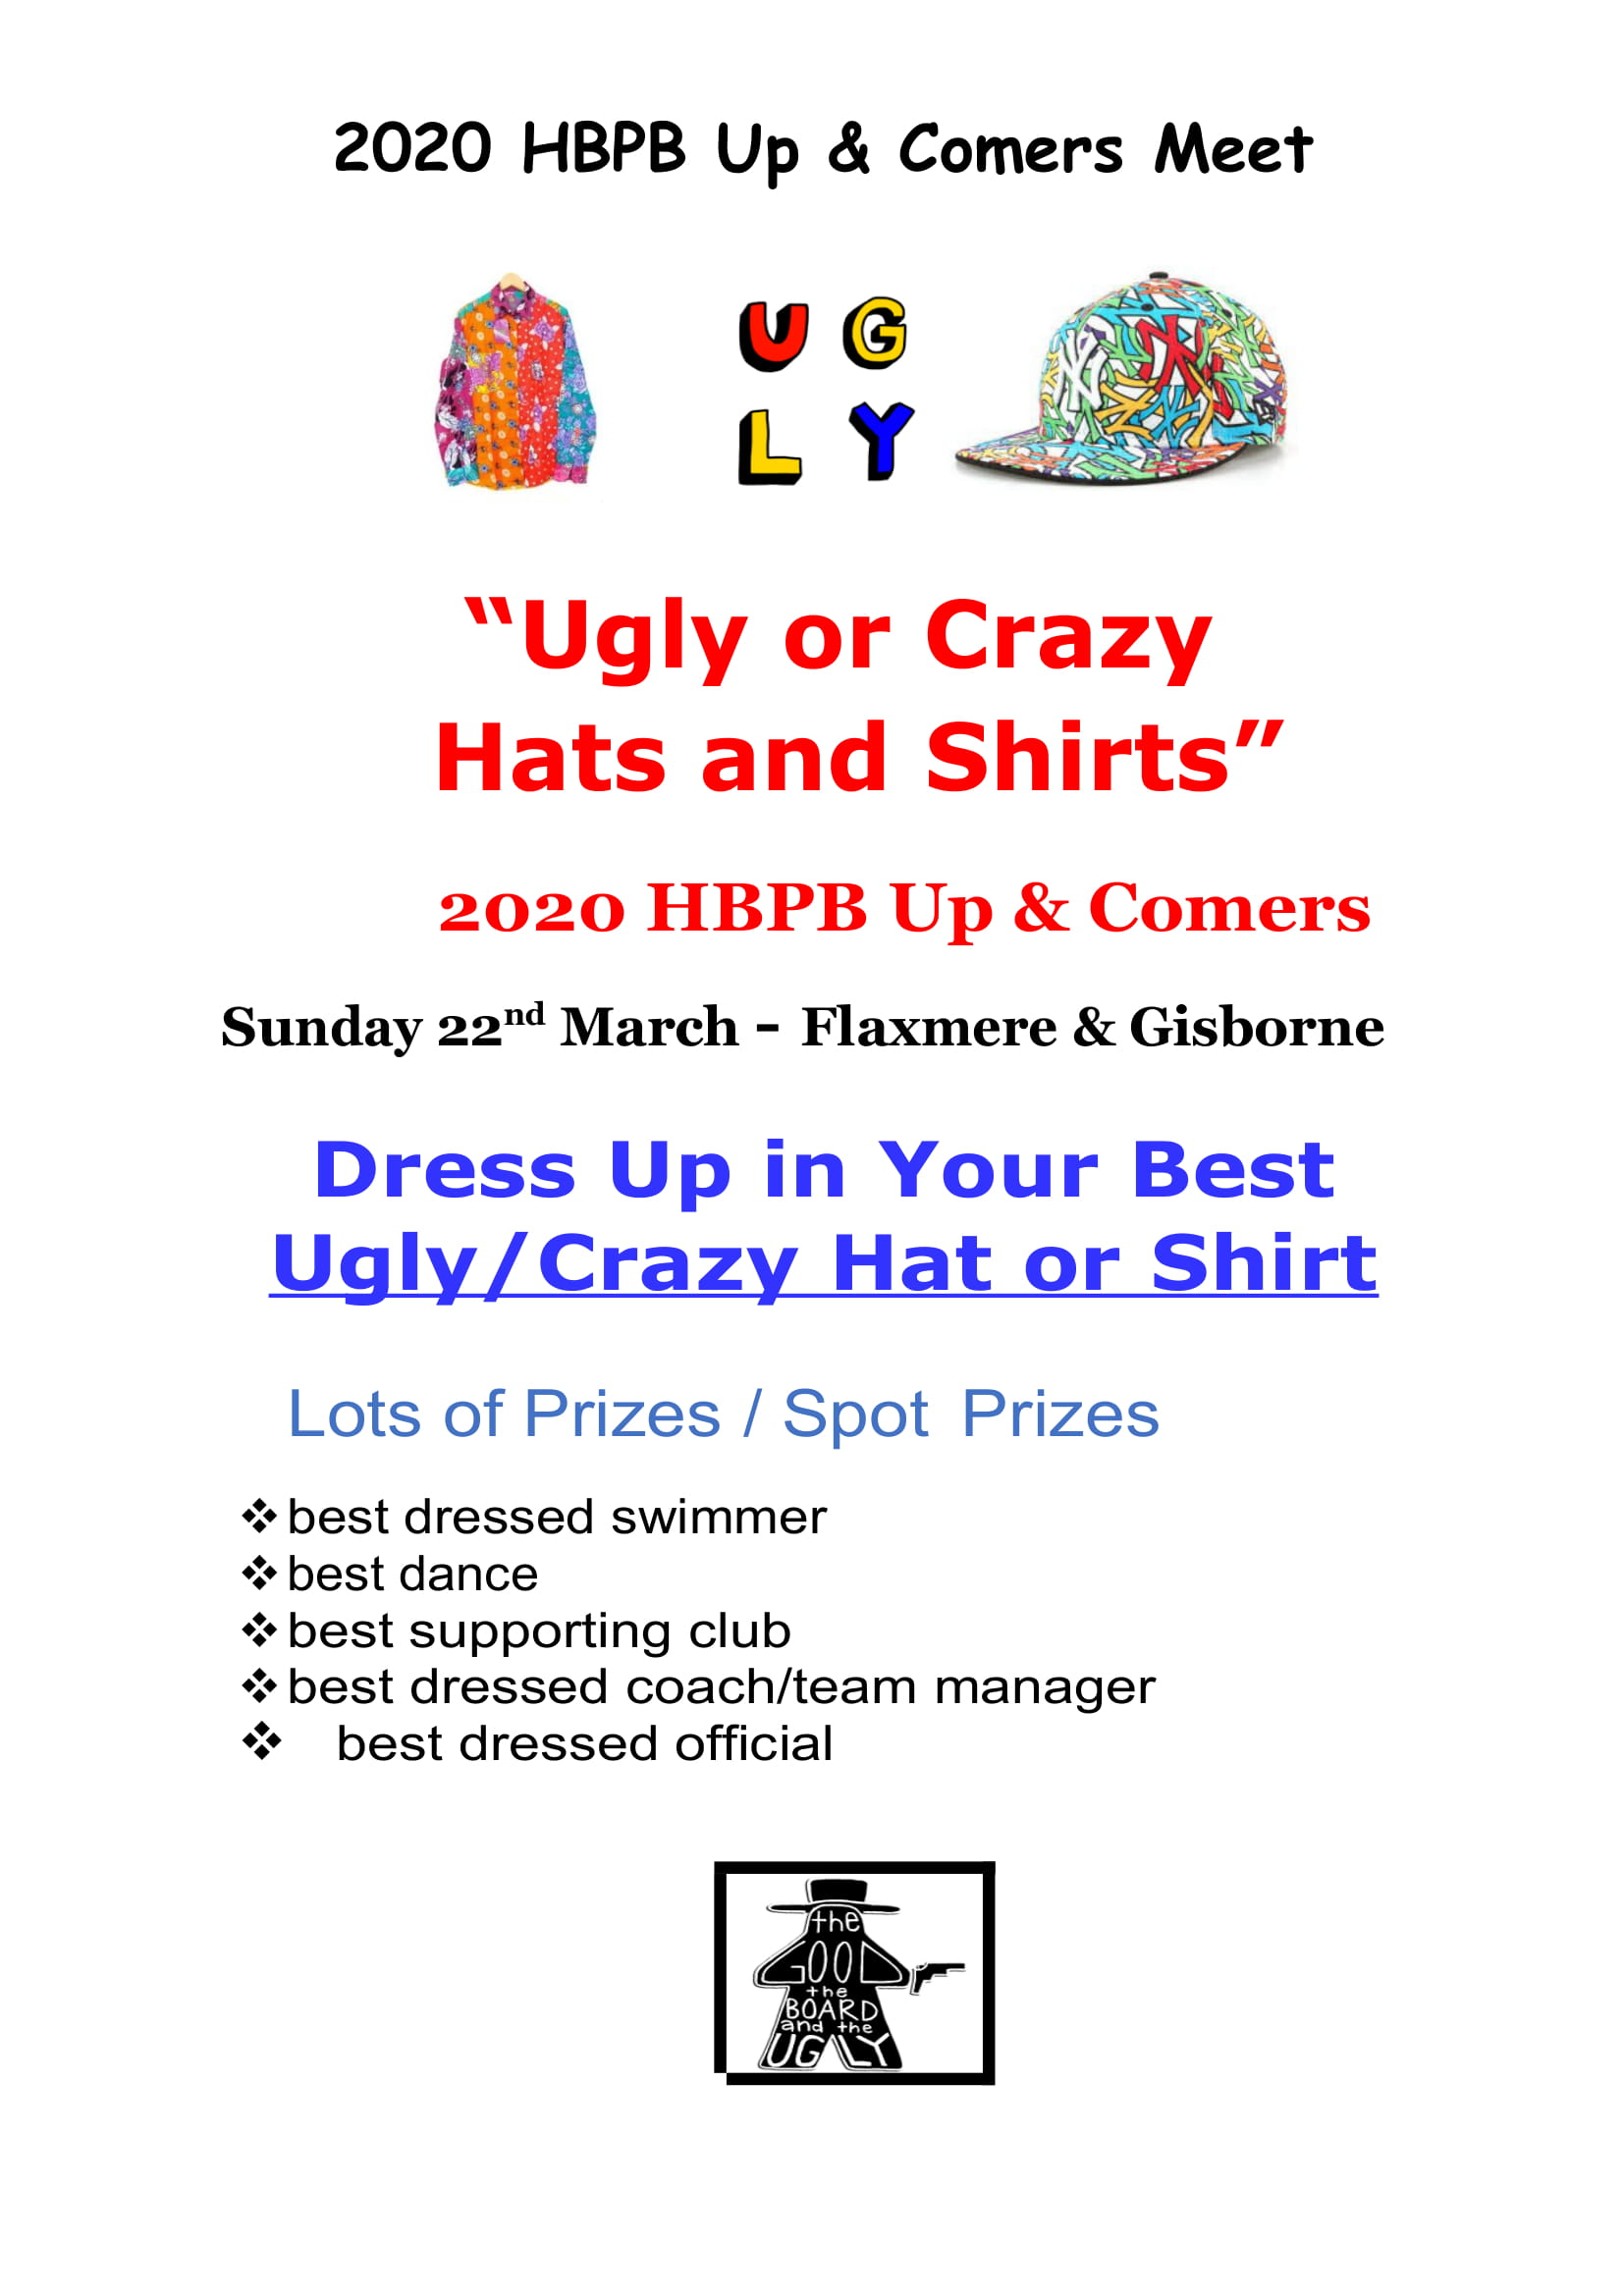 HBPB Up & Comers Dress Up Theme